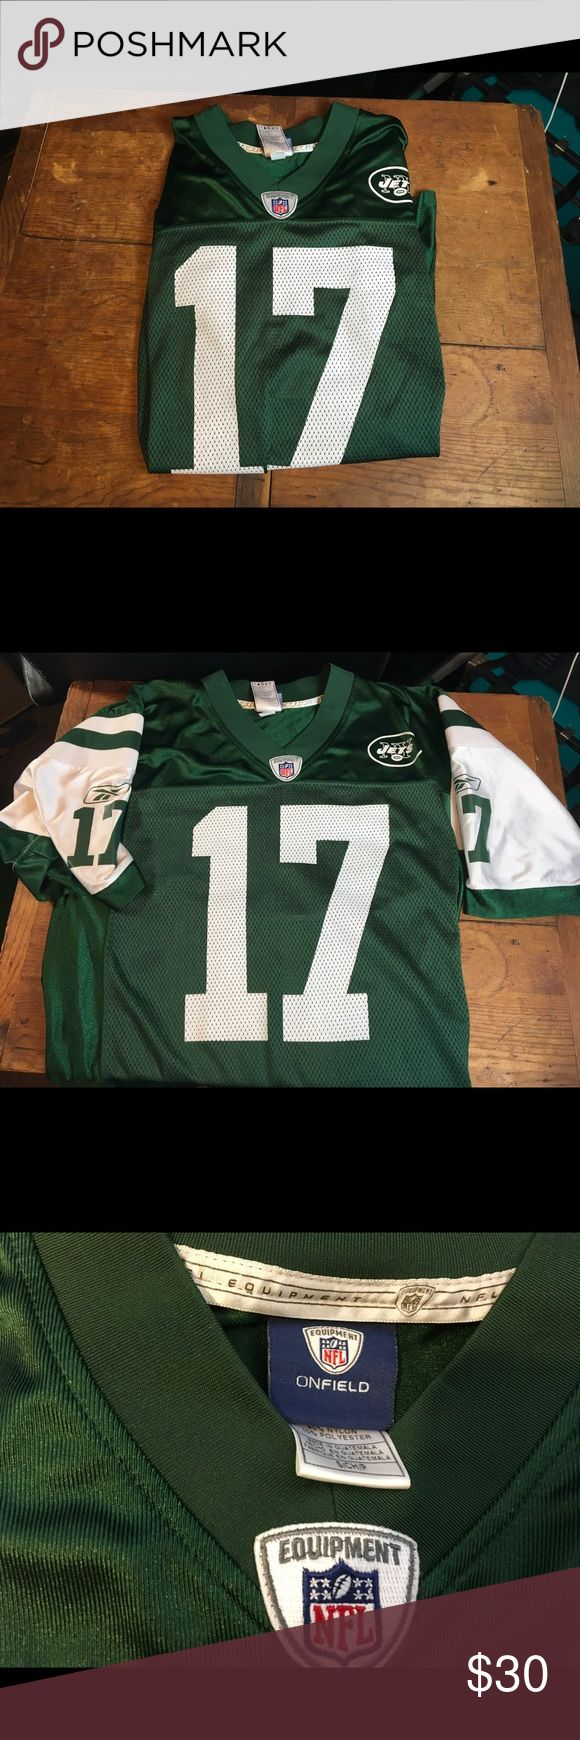 Jets jersey Jets jersey with number 17 Plaxico Buress. In excellent condition.. 9/10 condition.. support your Jets!! Reebok Shirts Tees - Short Sleeve